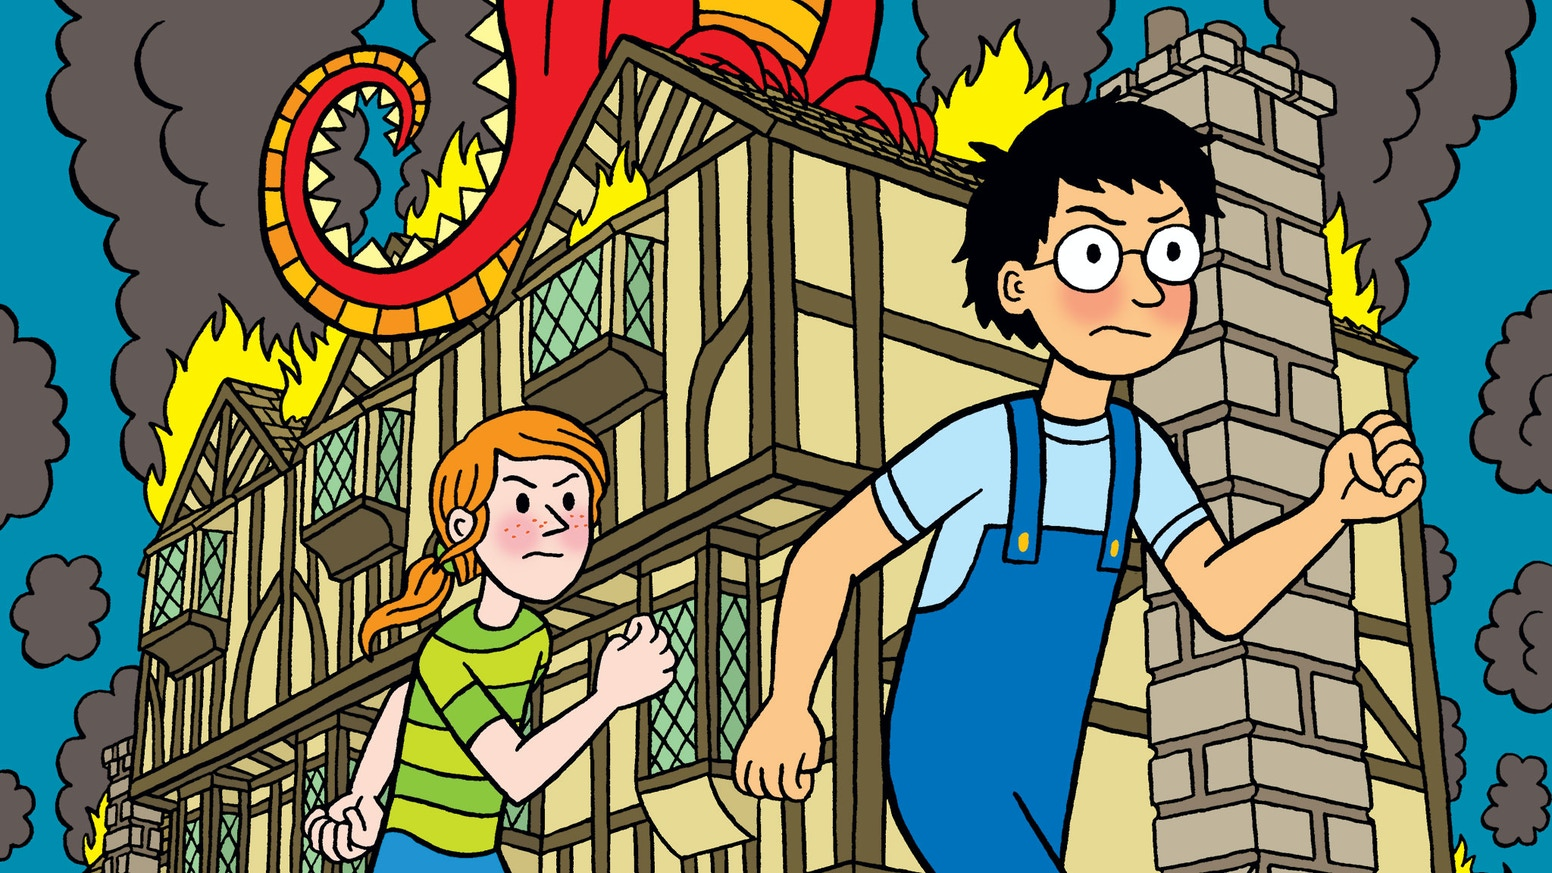 A  144-page, hardback collection of lighthearted fantasy adventure comics for kids, with dragons, wizards and lots of silly wordplay!